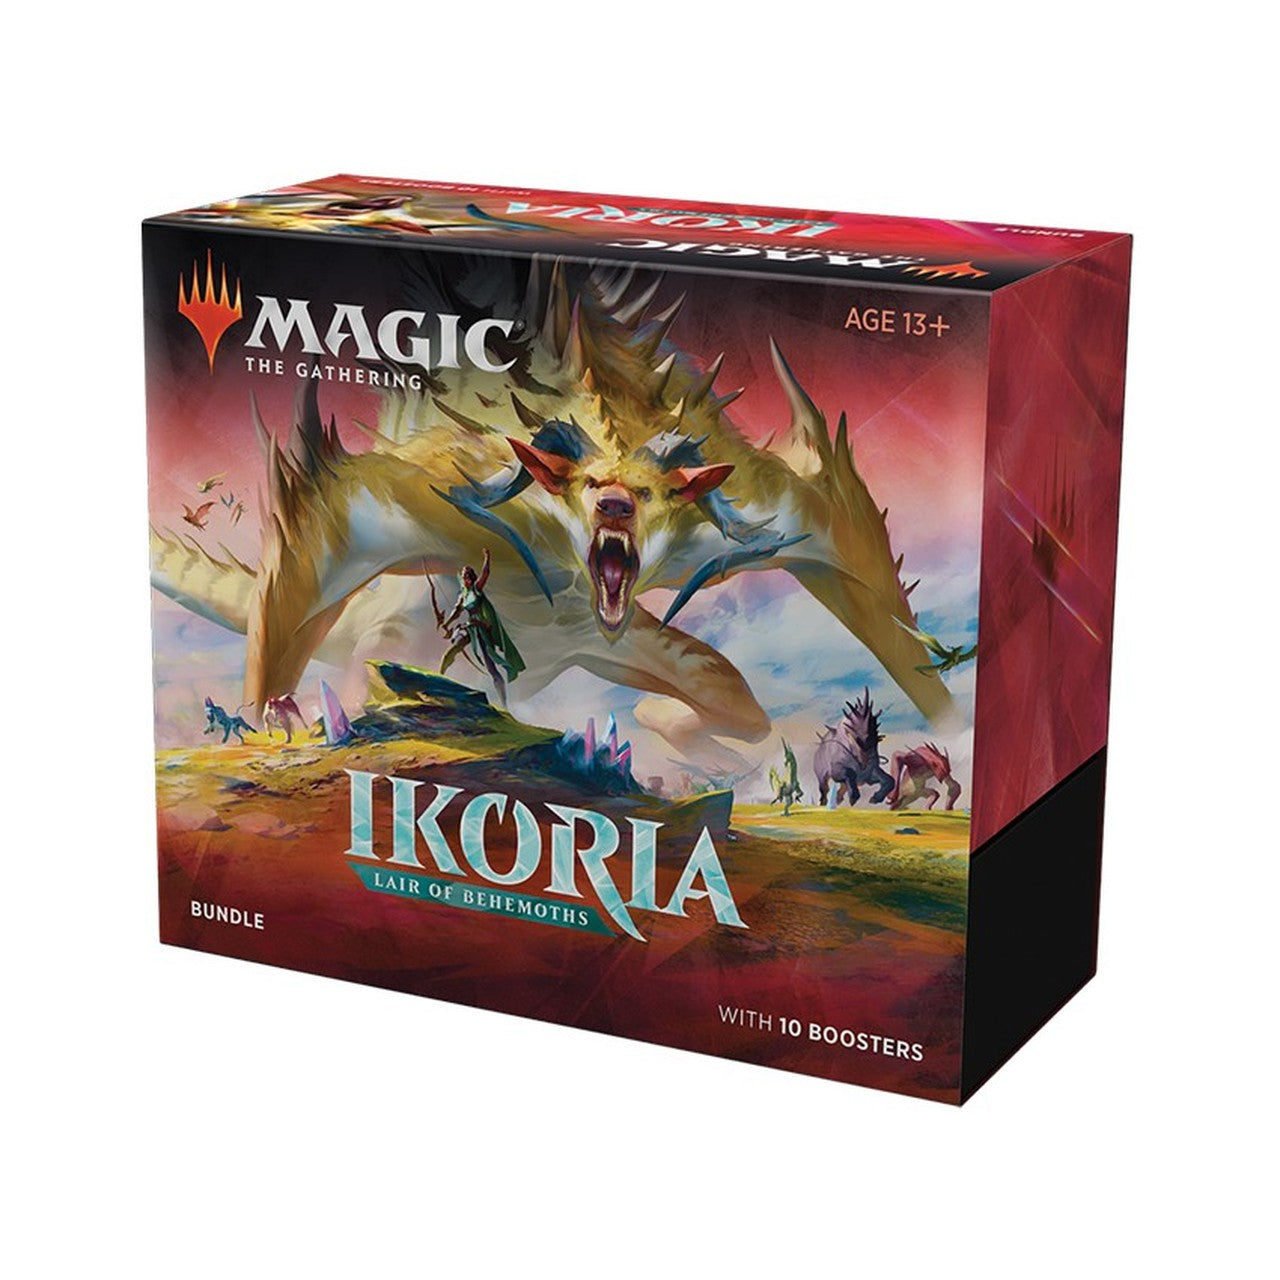 Ikoria bundle | Multizone: Comics And Games